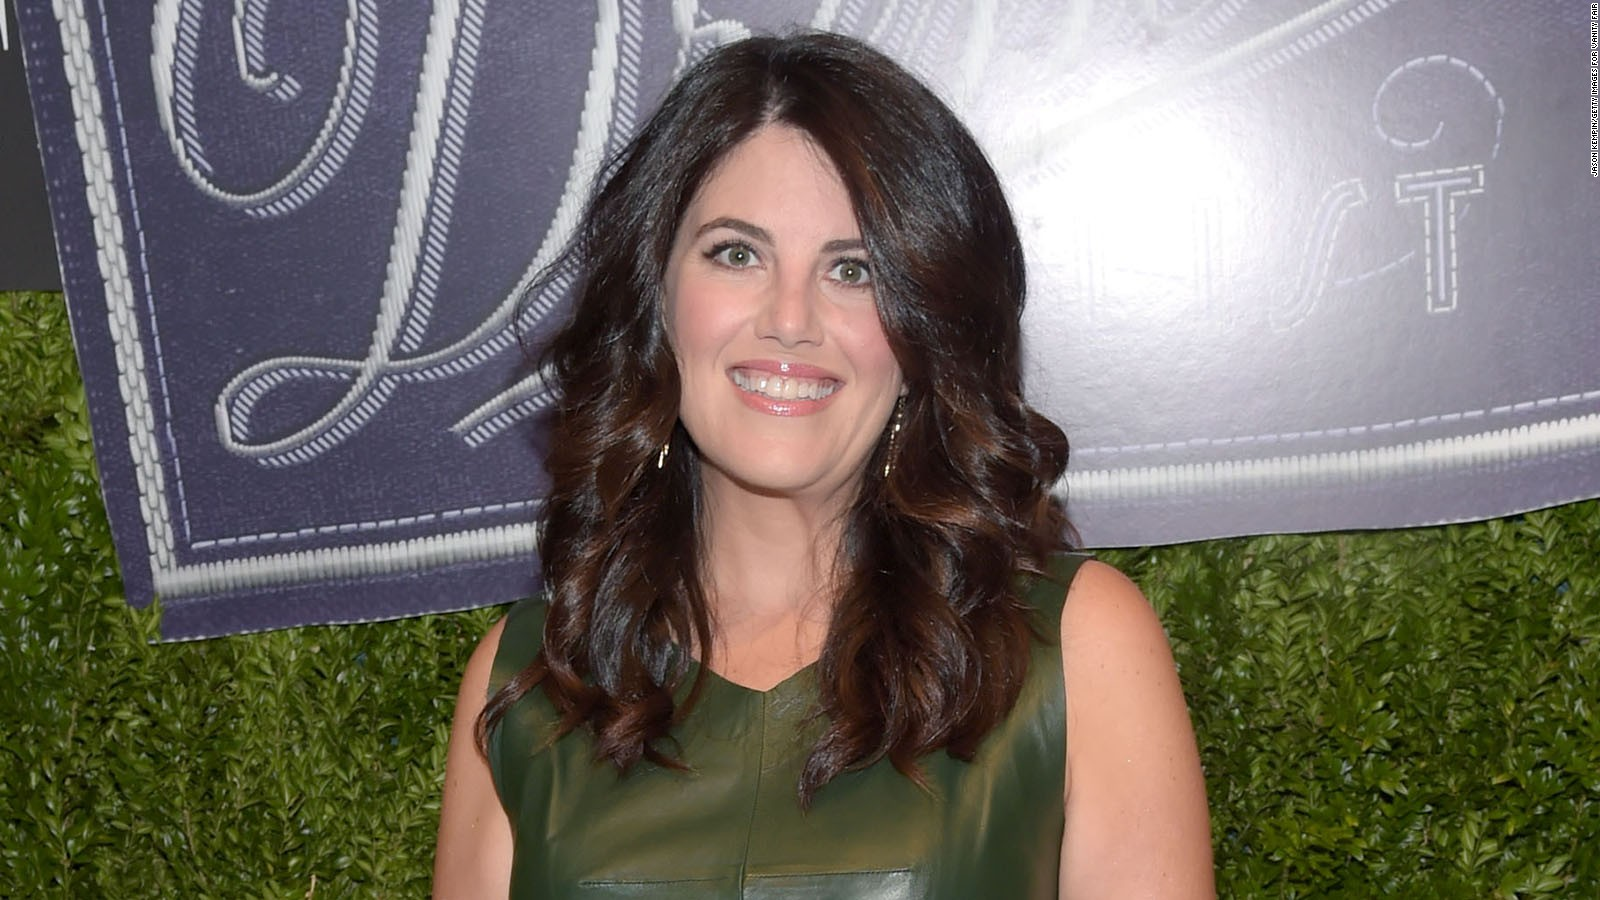 Monica Lewinsky Walks Off Interview Cnn Video